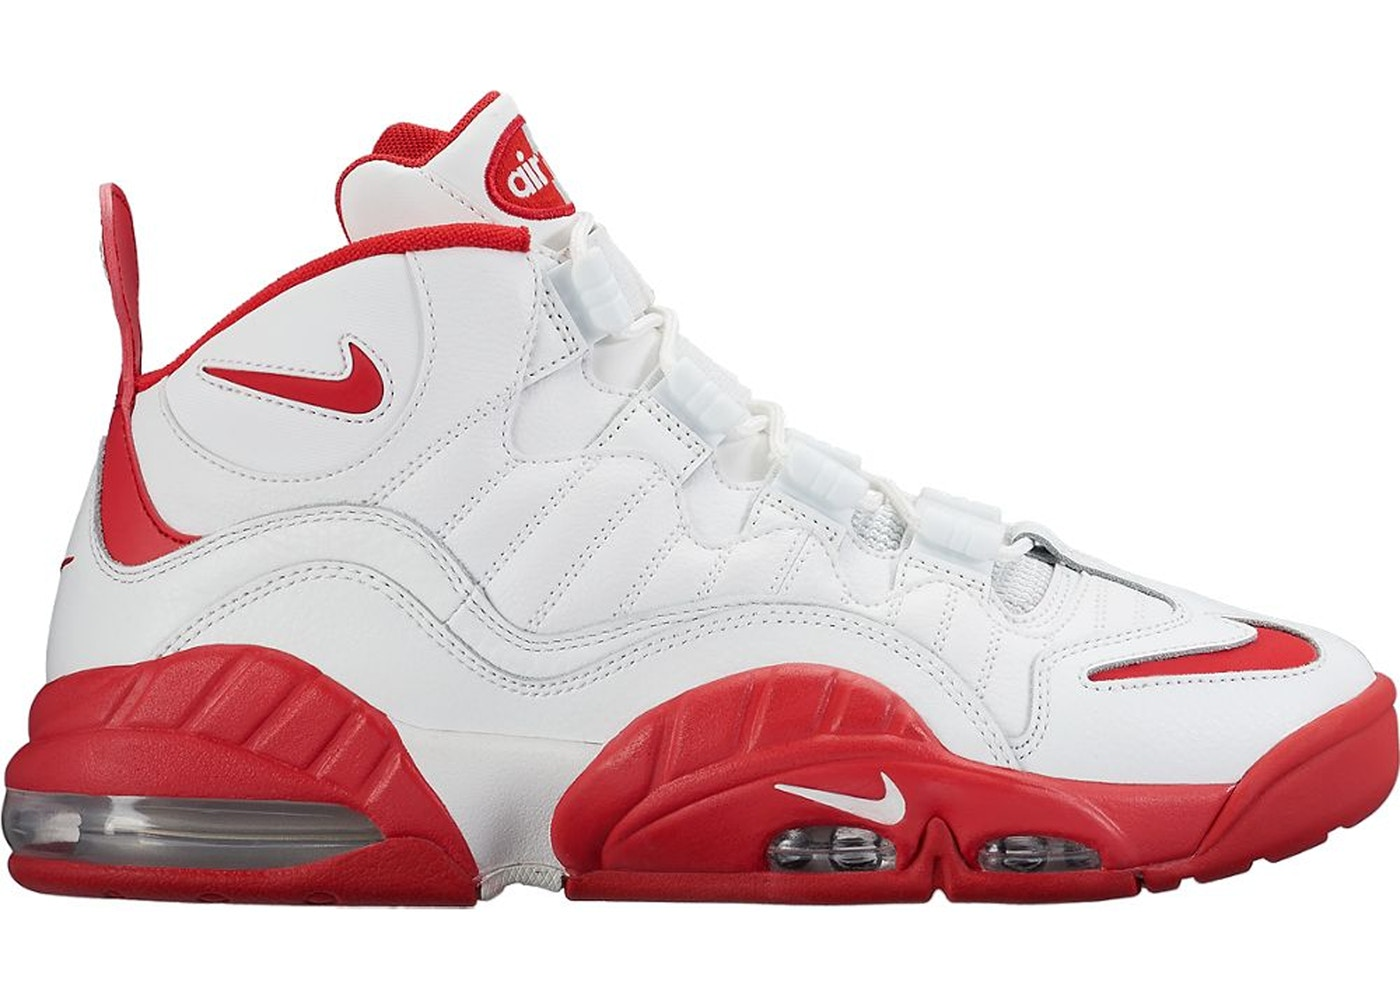 8a63380d6c Sell. or Ask. Size: 13. View All Bids. Air Max Sensation White Red